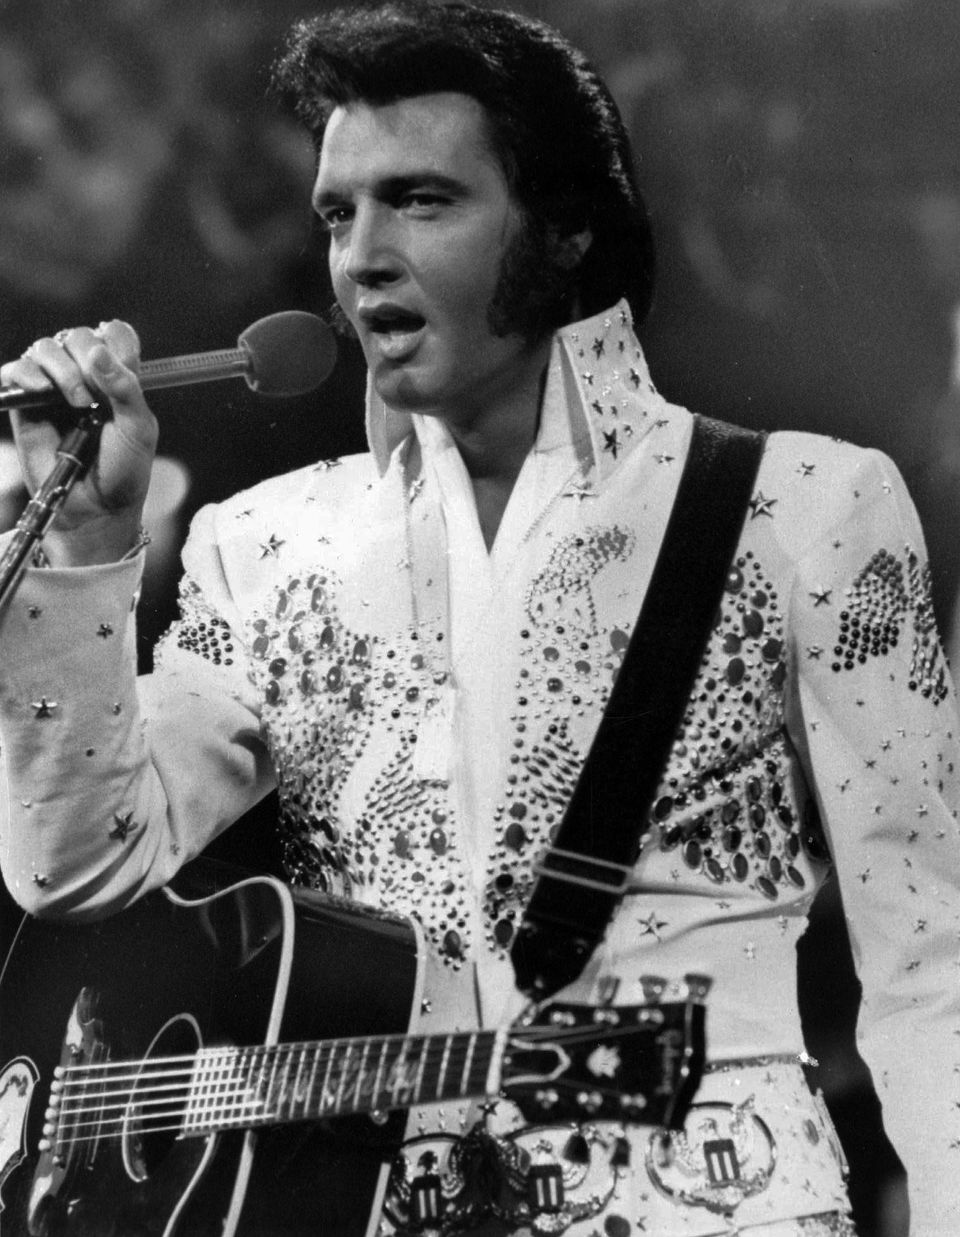 FILE - In this undated file photo released by NBC-TV, singer Elvis Presley is shown in concert in the later part of his caree